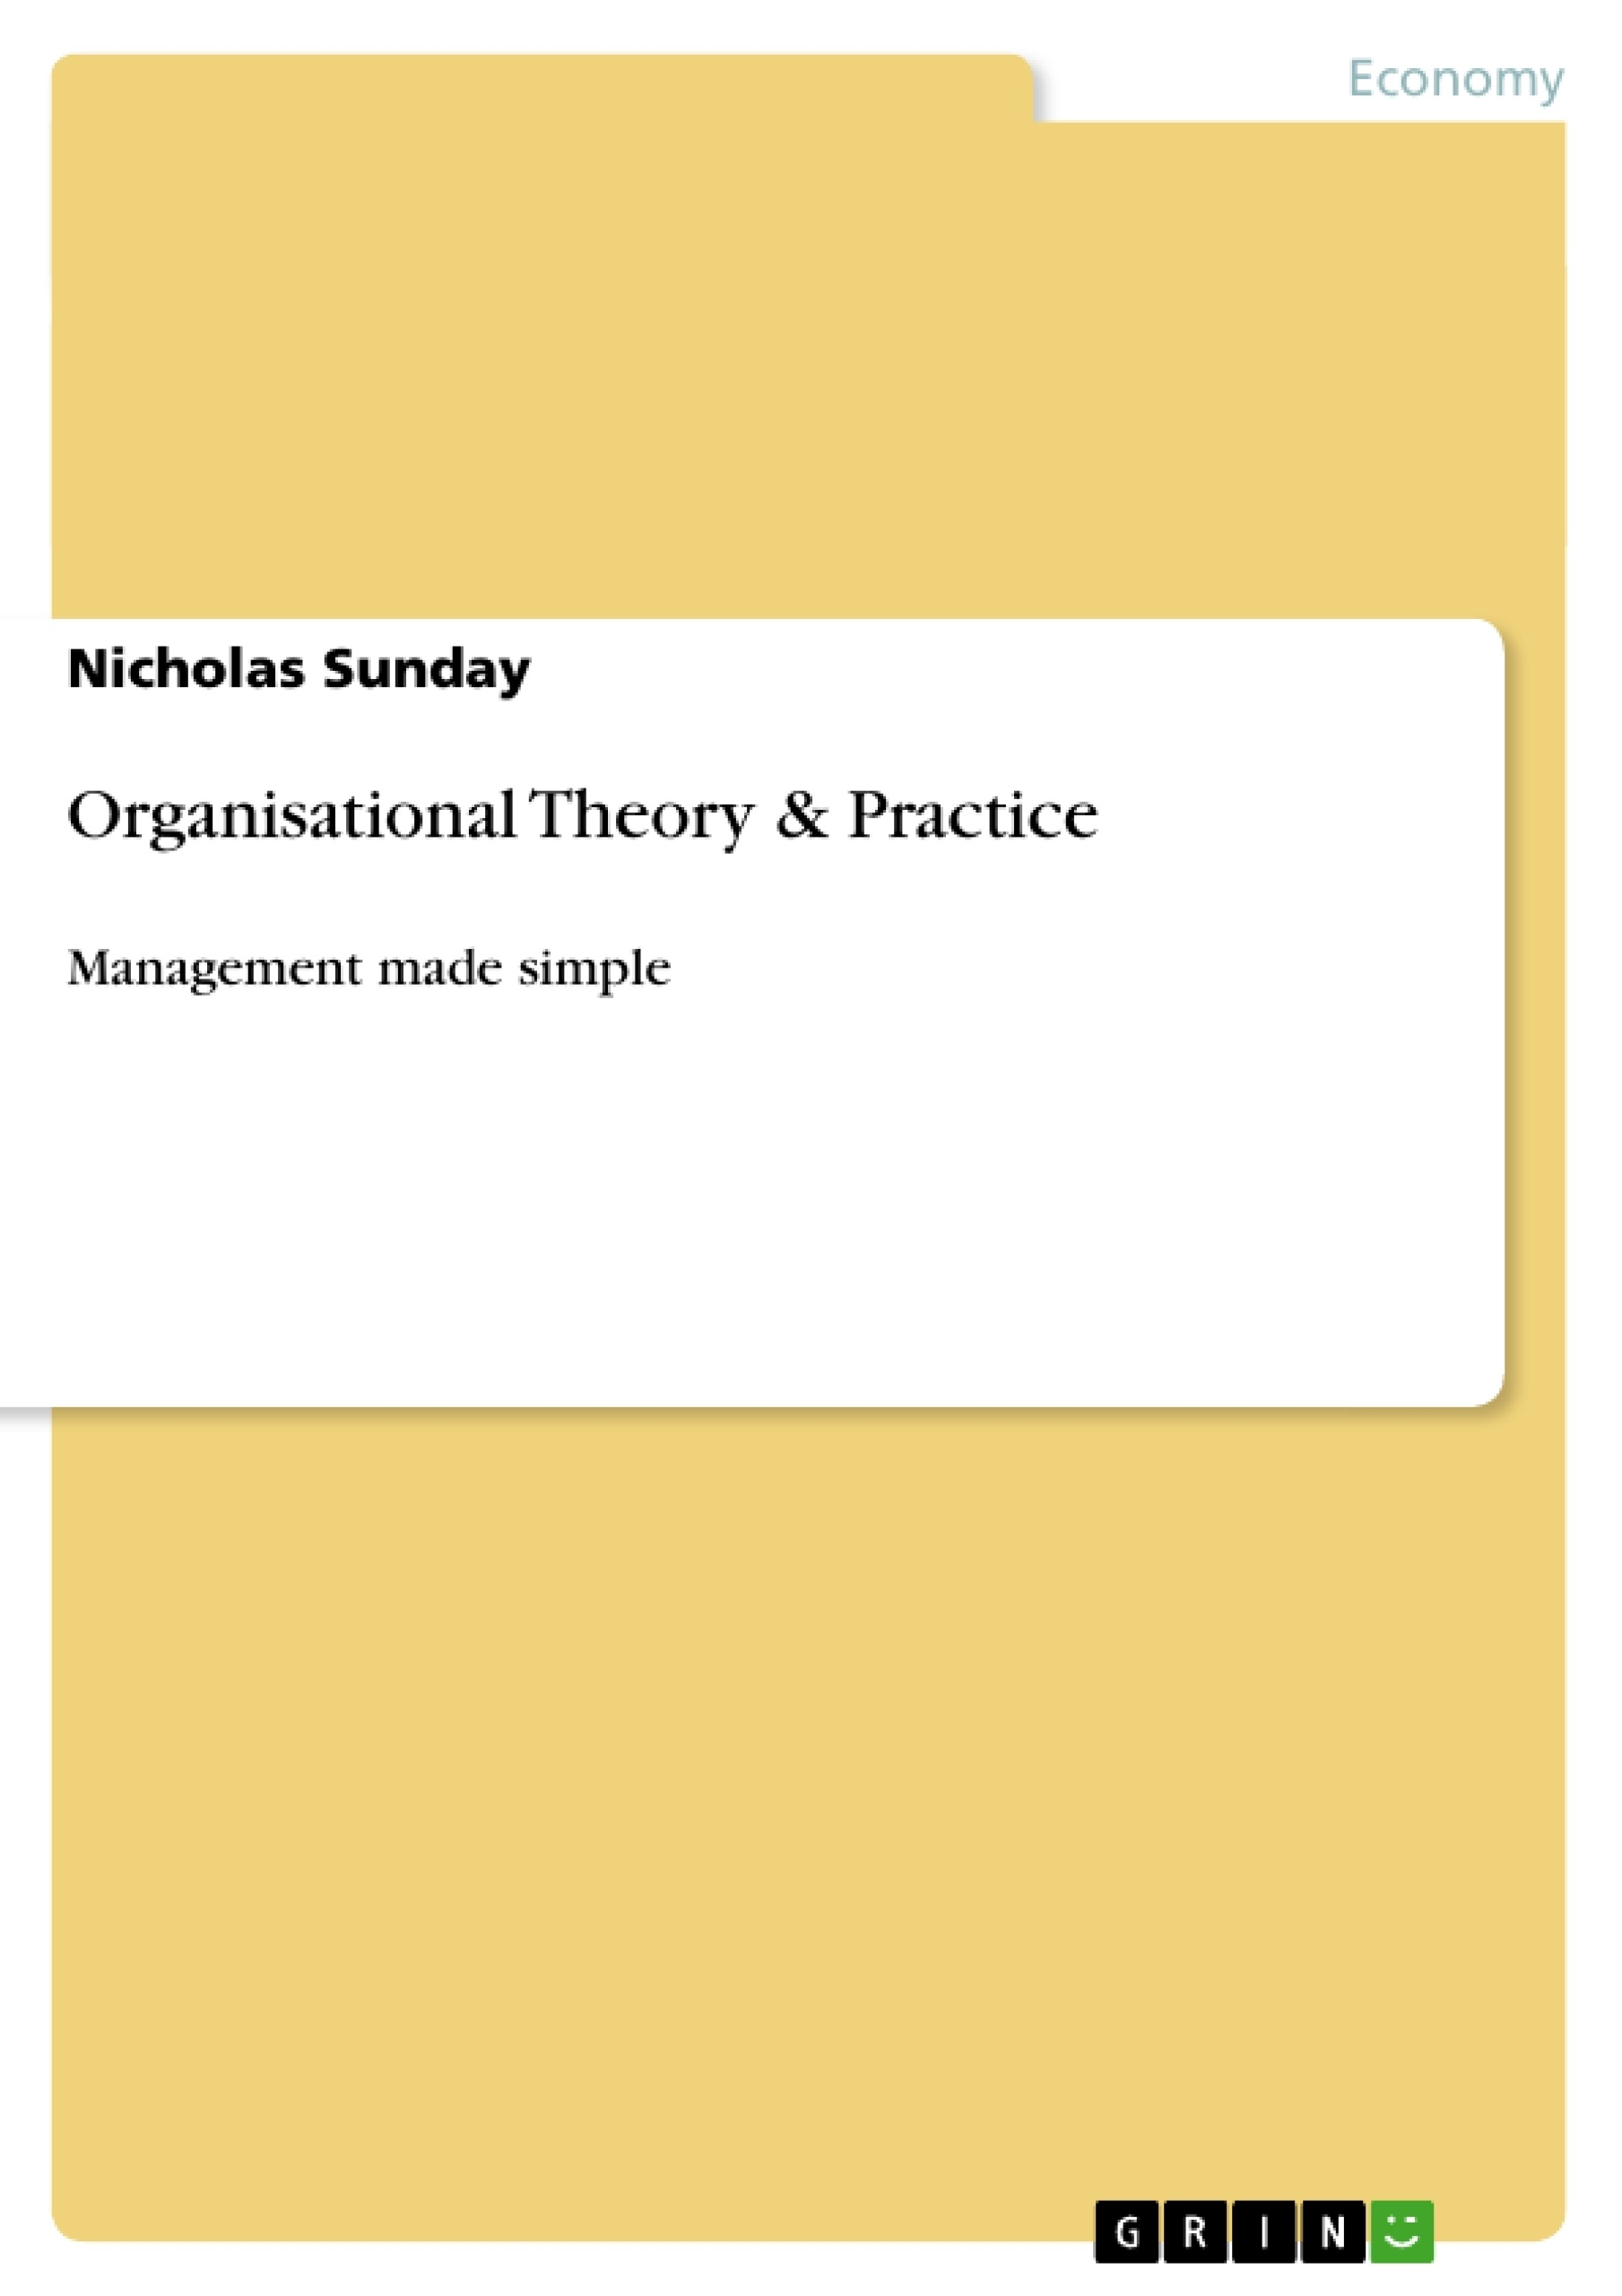 organisational theory practice publish your master s thesis organisational theory practice publish your master s thesis bachelor s thesis essay or term paper